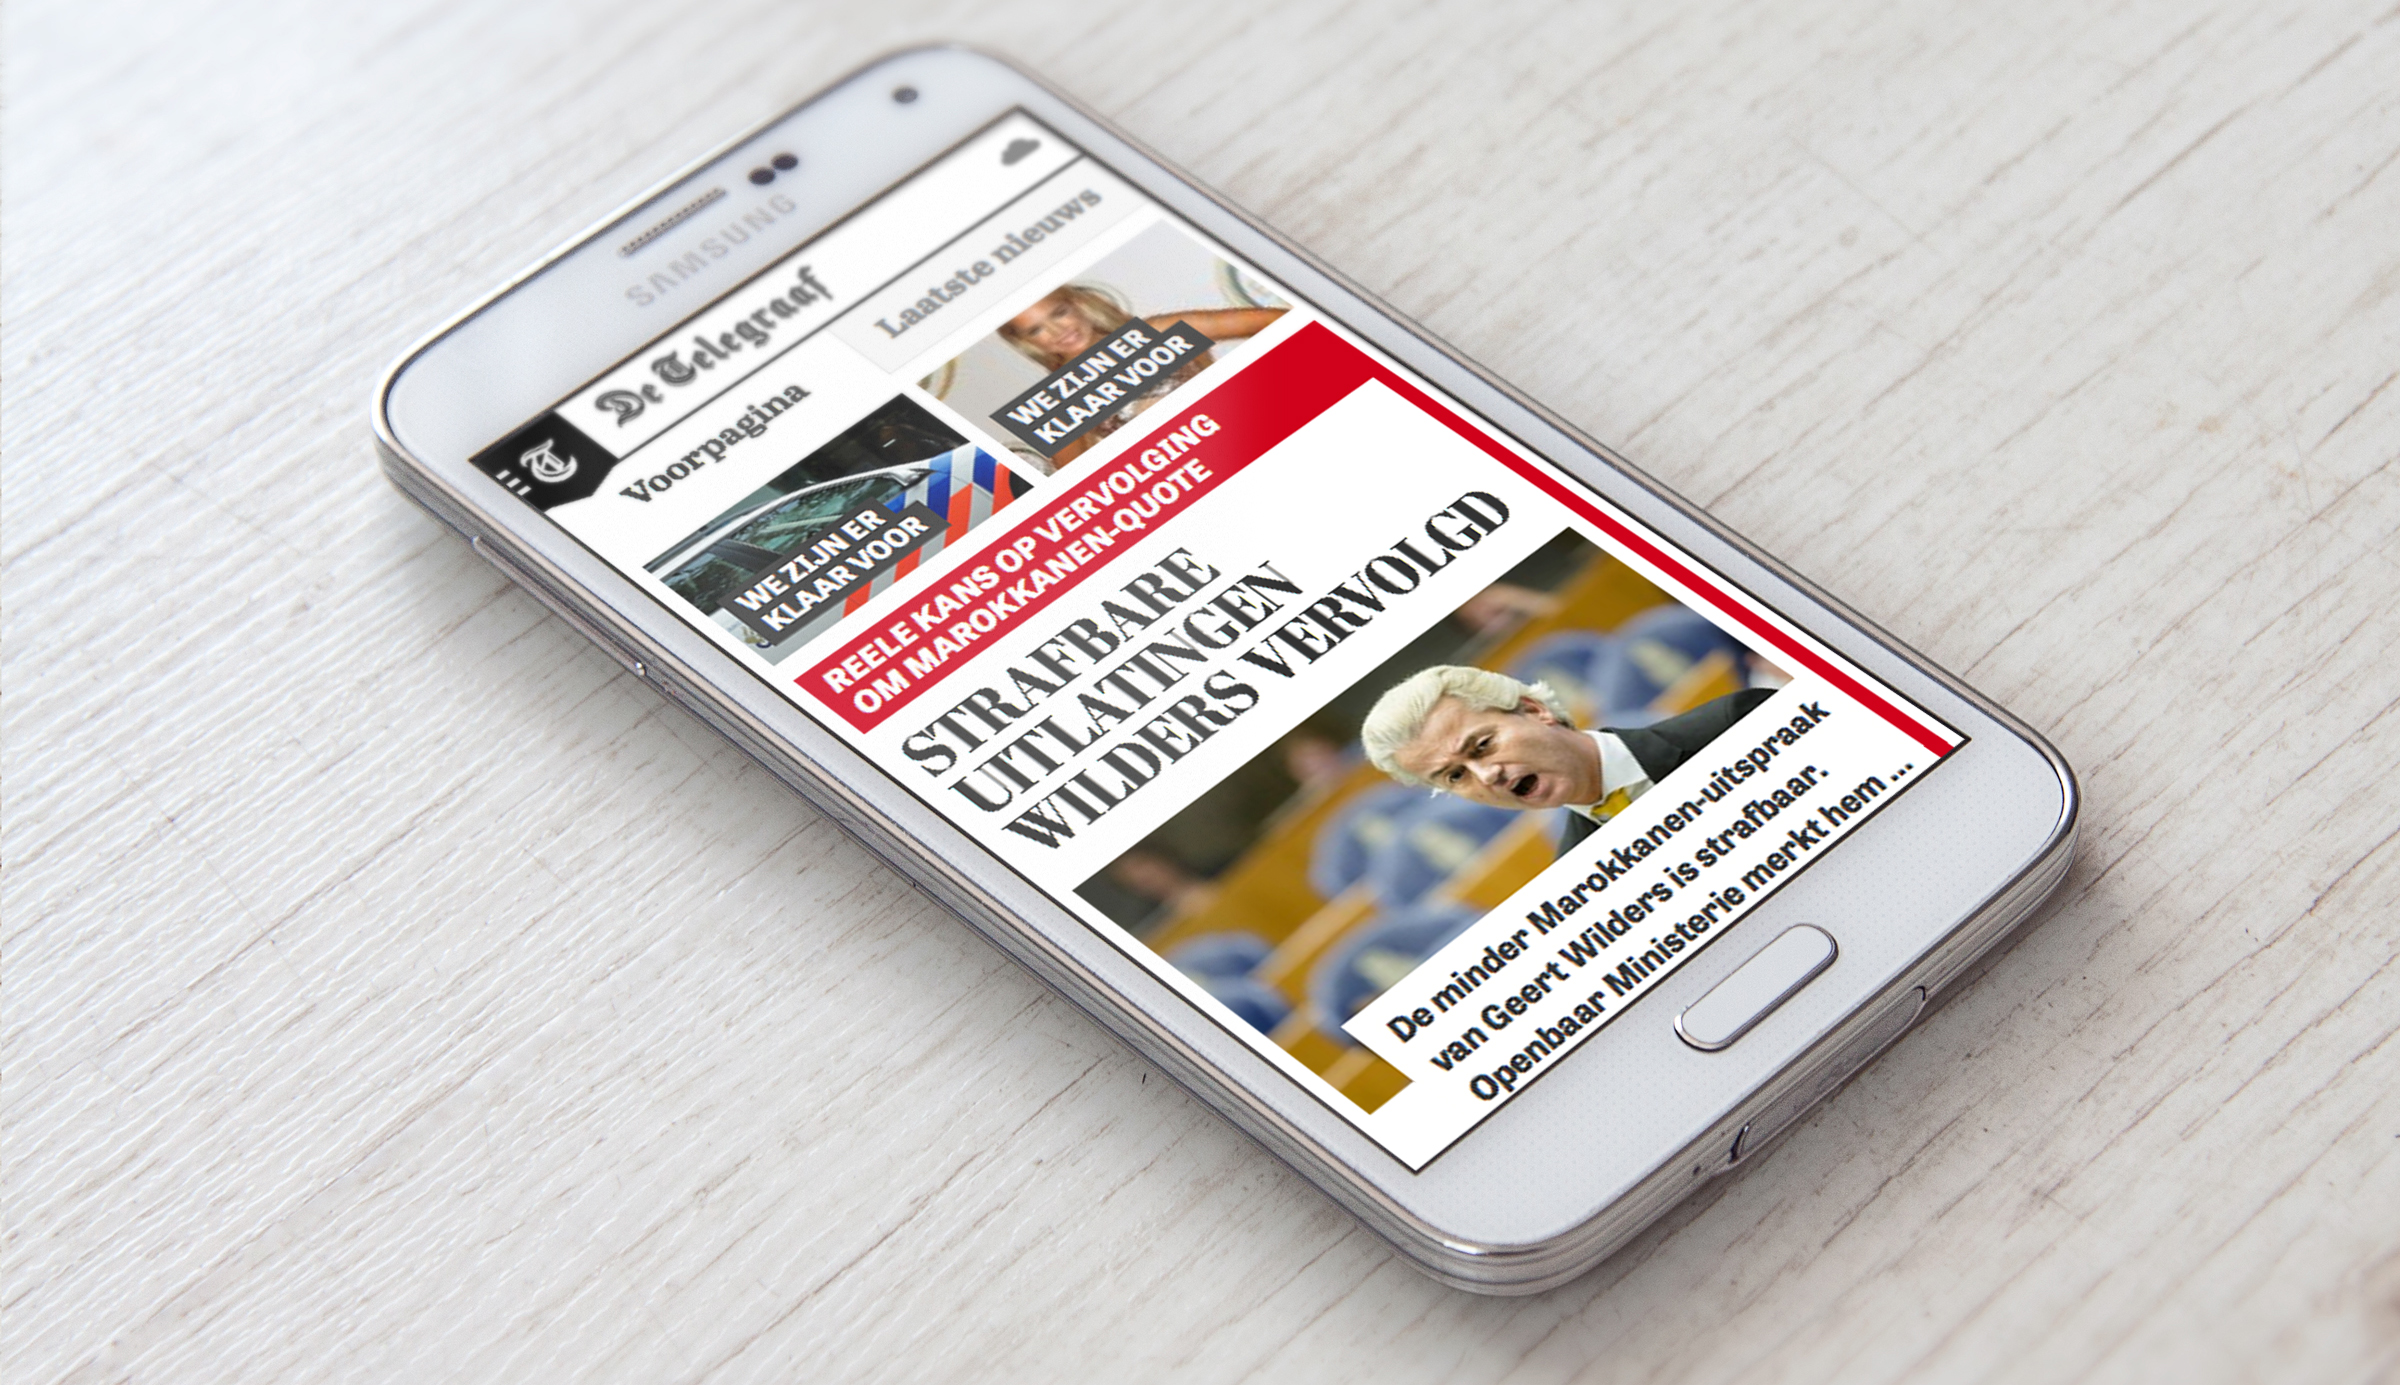 telegraaf-android-phone-app